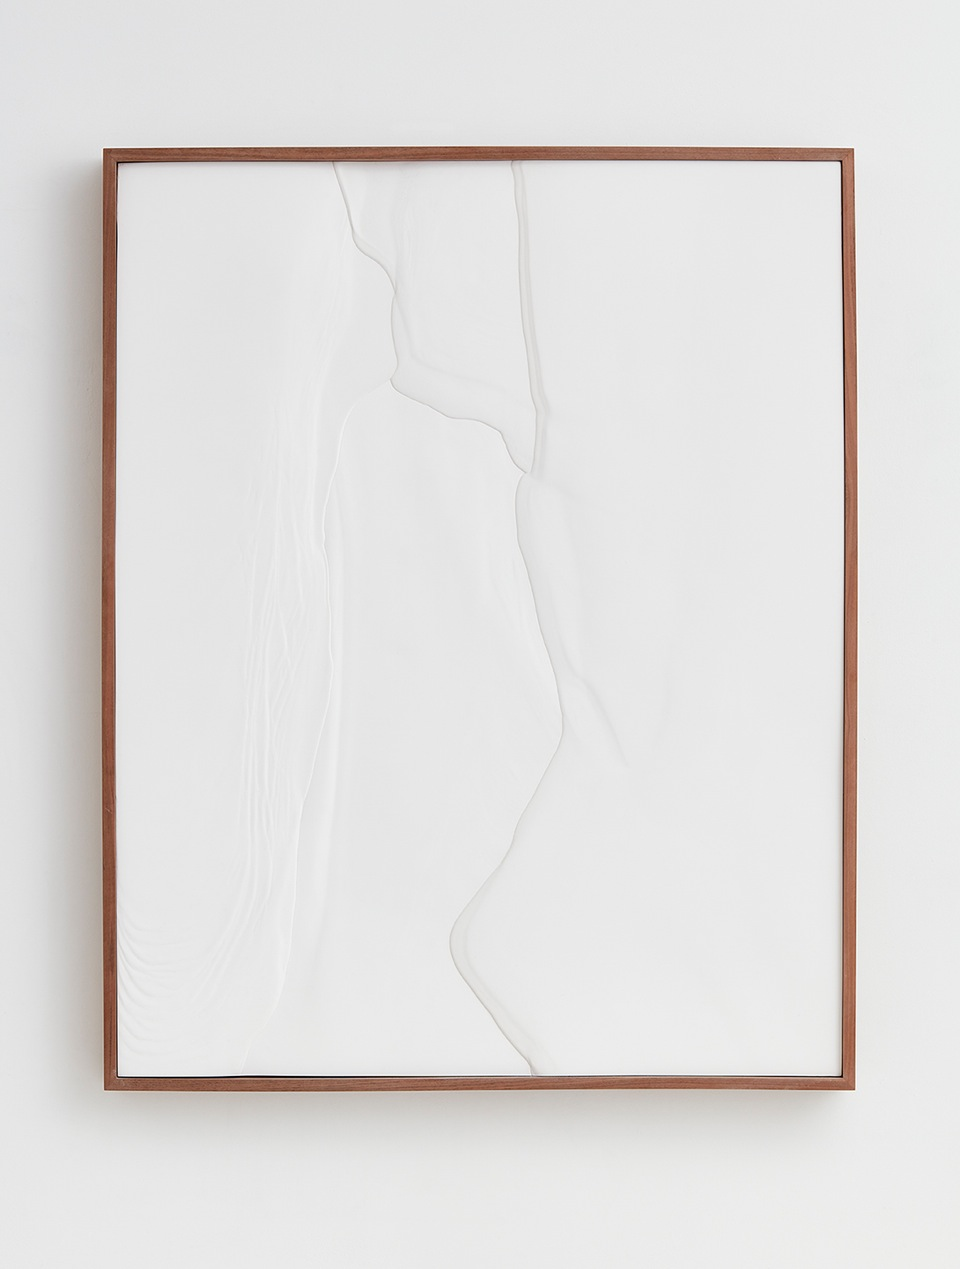 Anthony Pearson Untitled (Plaster Positive) 2016 Hydrocal in walnut frame 61 x 48.75 x 4 in (154.94h x 123.83w x 10.16d cm) AP413